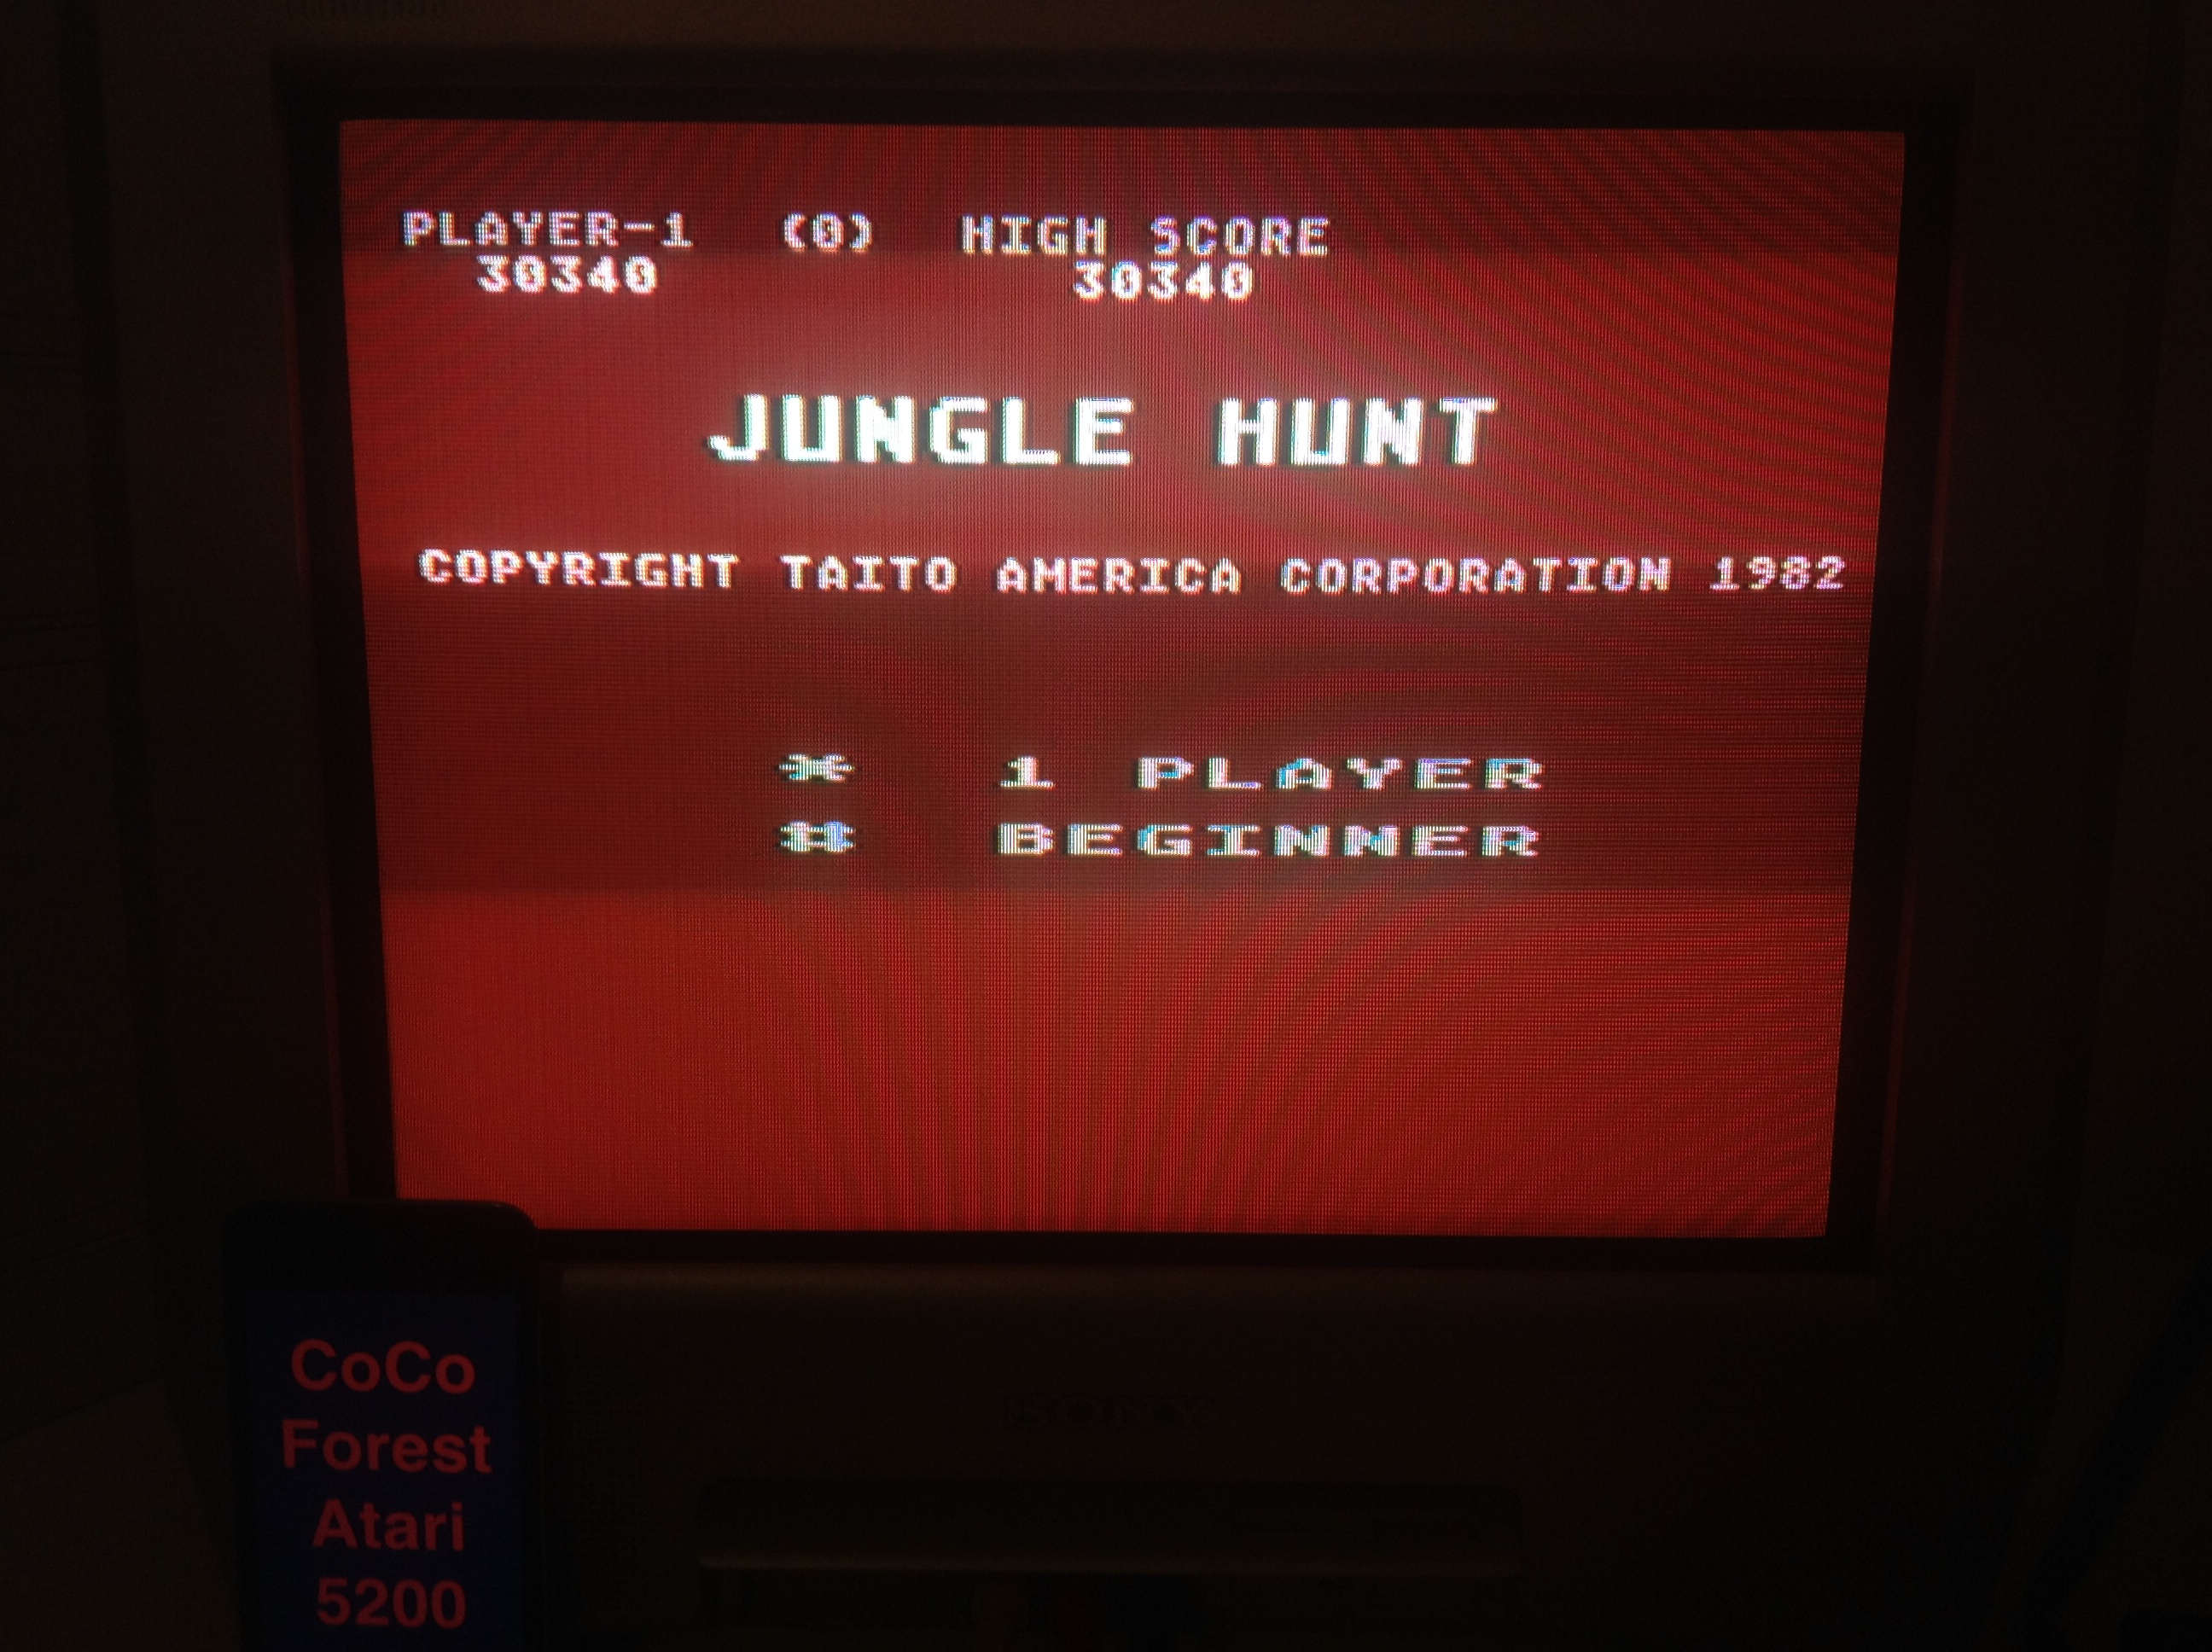 CoCoForest: Jungle Hunt: Beginner (Atari 5200) 30,340 points on 2015-11-17 13:13:38